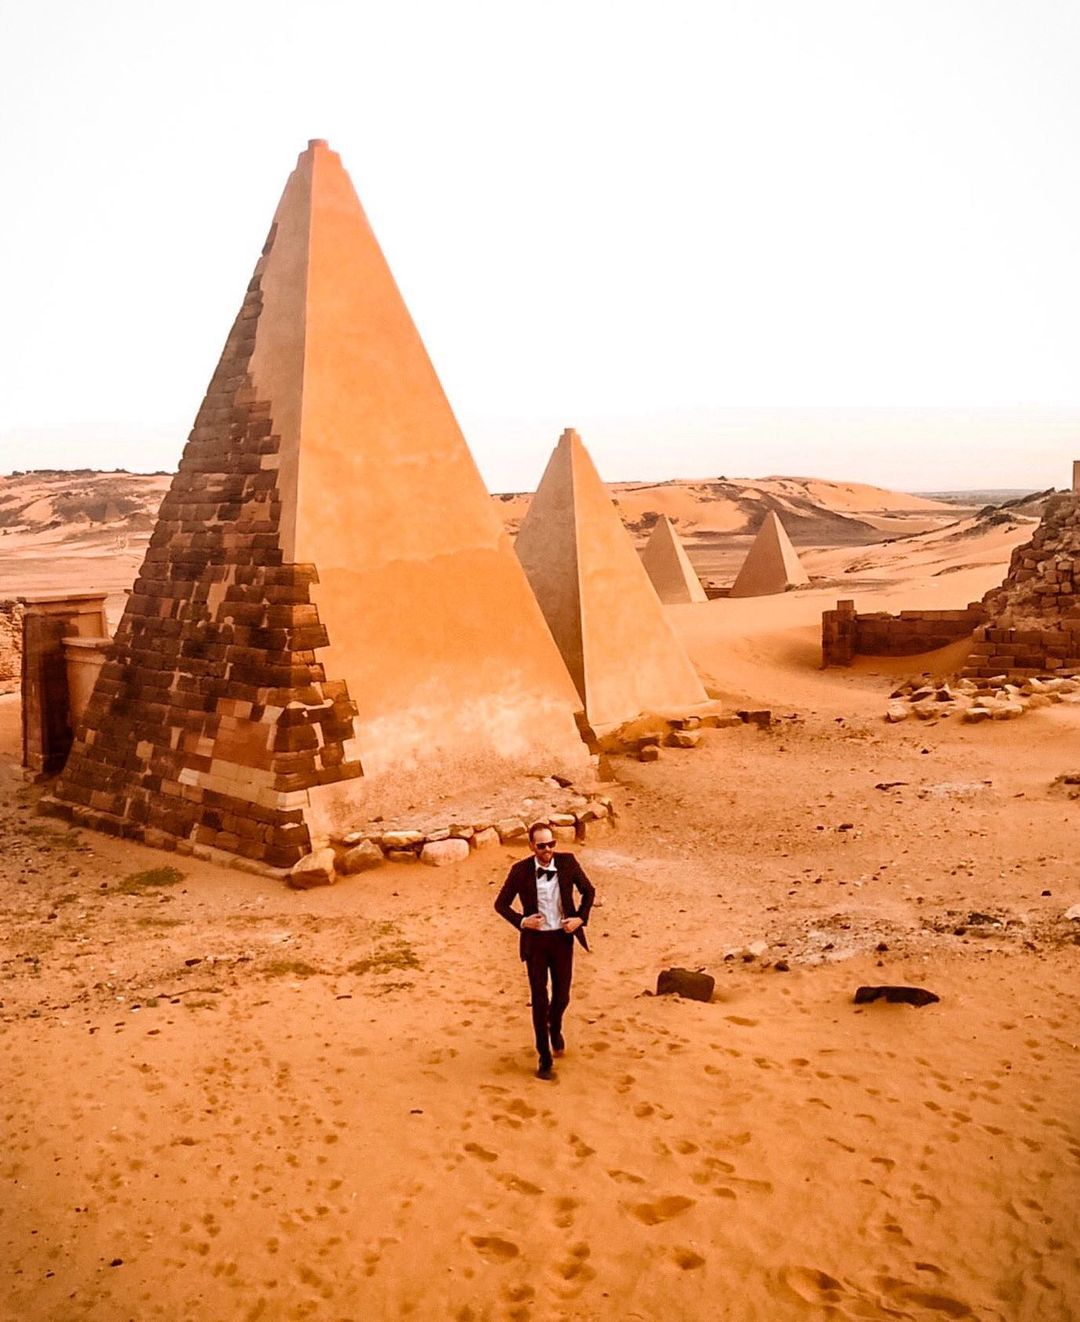 This is a photo of GG around pyramids.